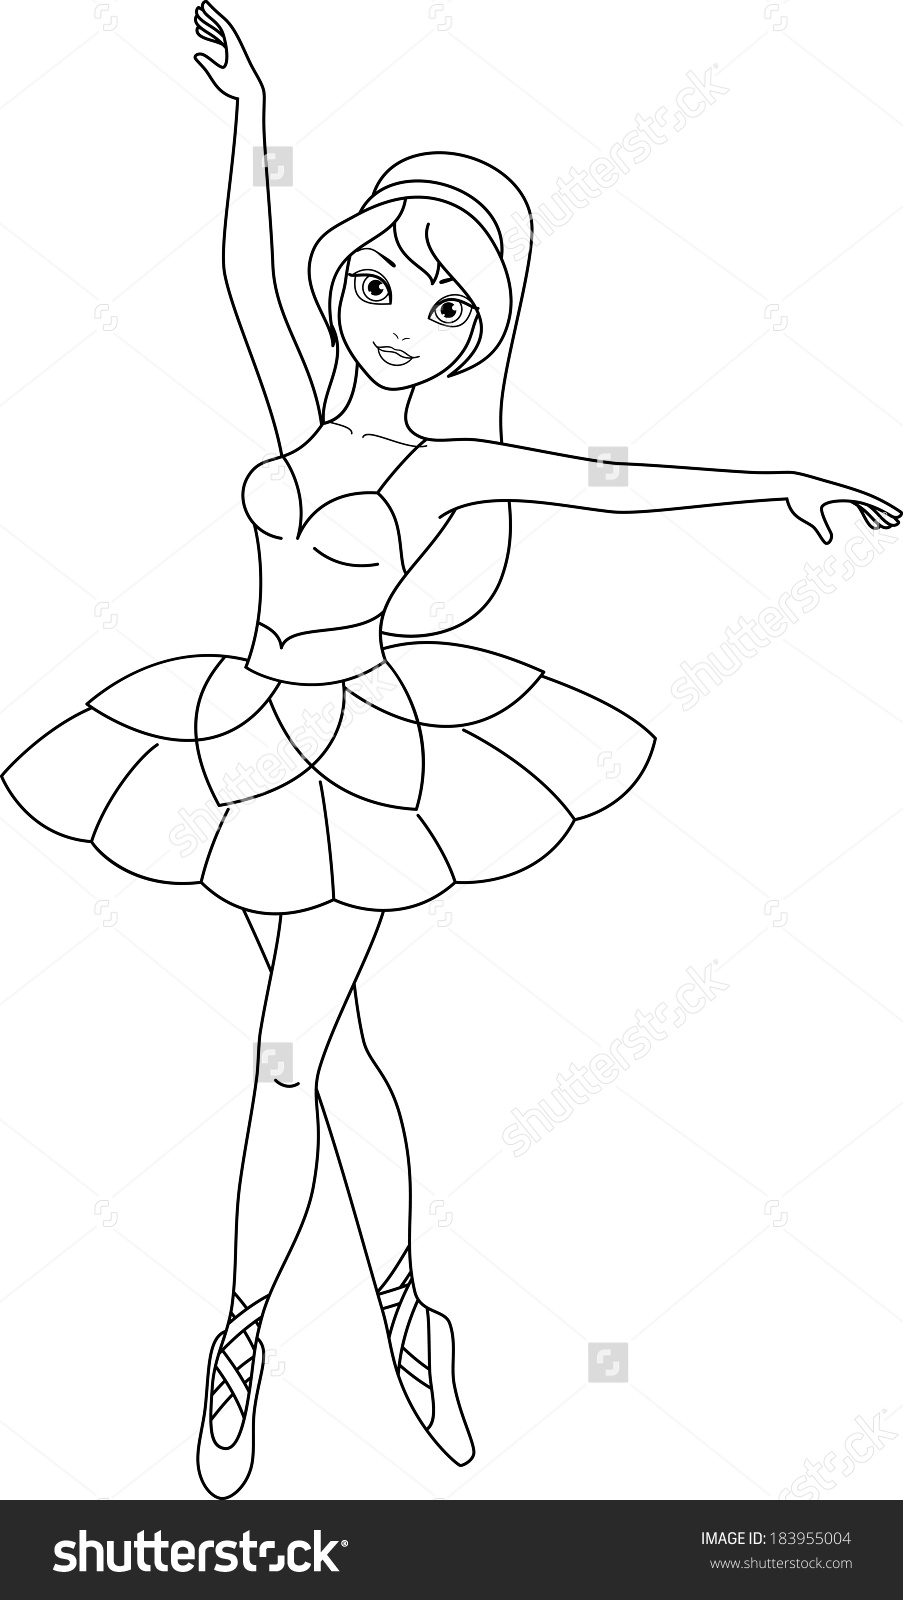 903x1600 Launching Ballerina Colouring Page Coloring